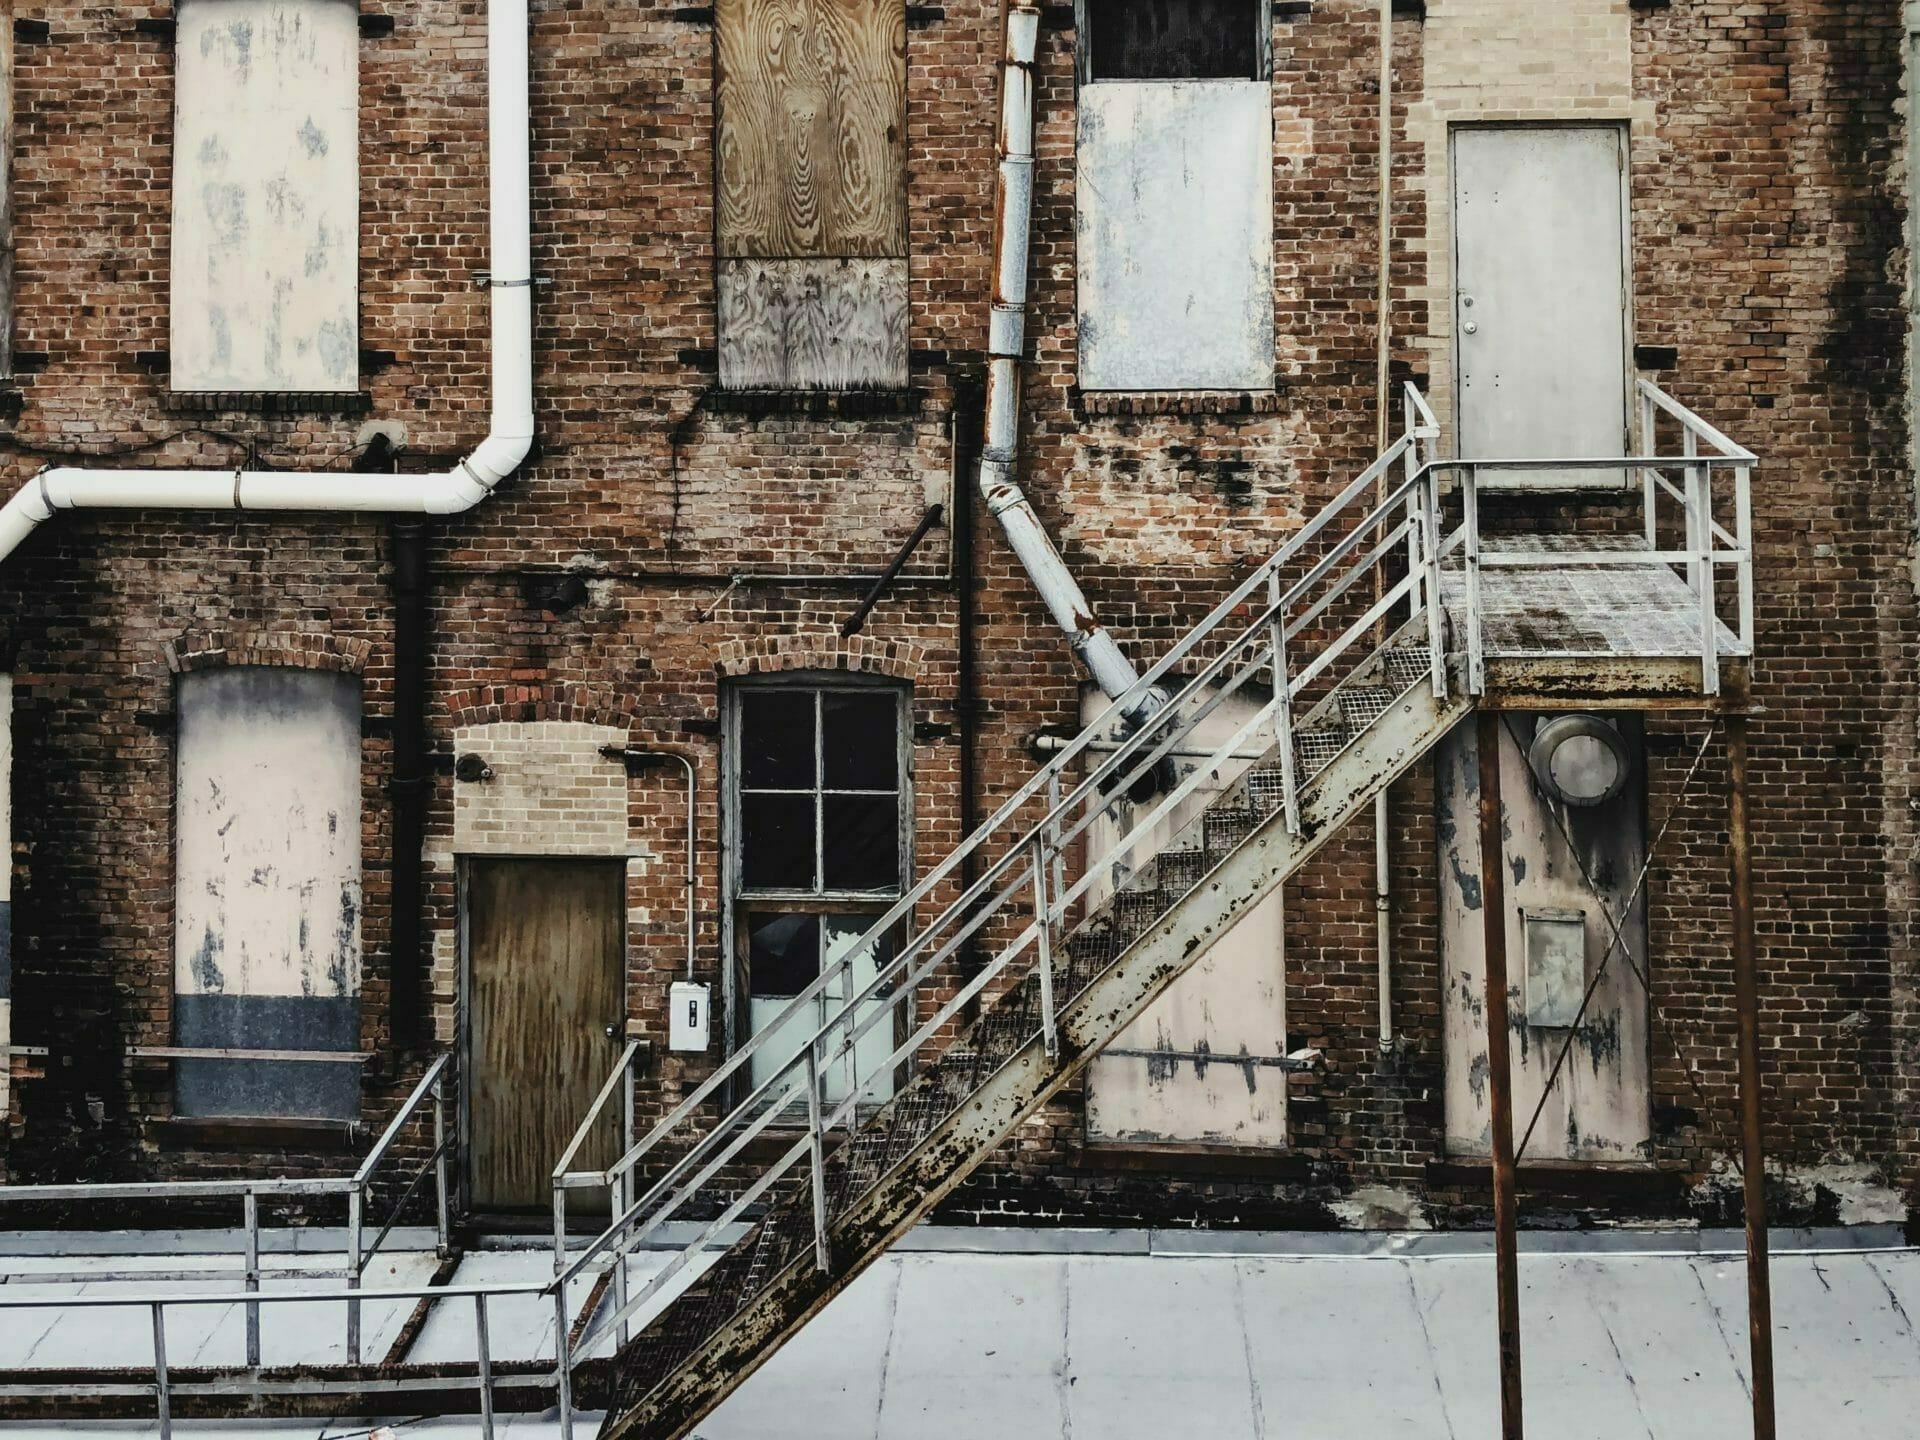 Picture of abandoned building with fire escape for Real Wealth Show Podcast Episode #711